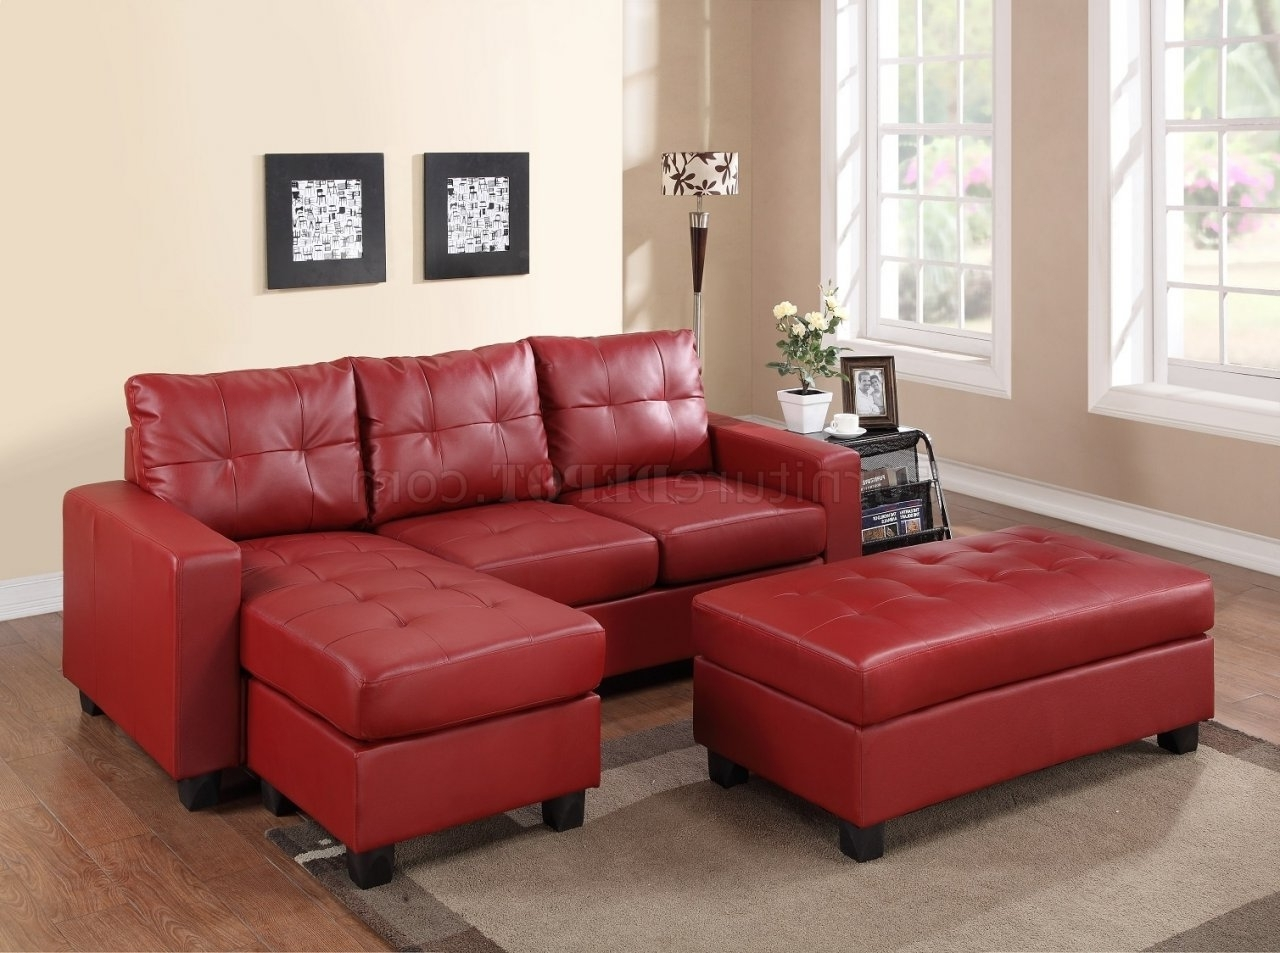 Beautiful Red Leather Sectional Sofa With Chaise Photos Within Most Recent Red Leather Sectional Sofas With Recliners (View 13 of 20)